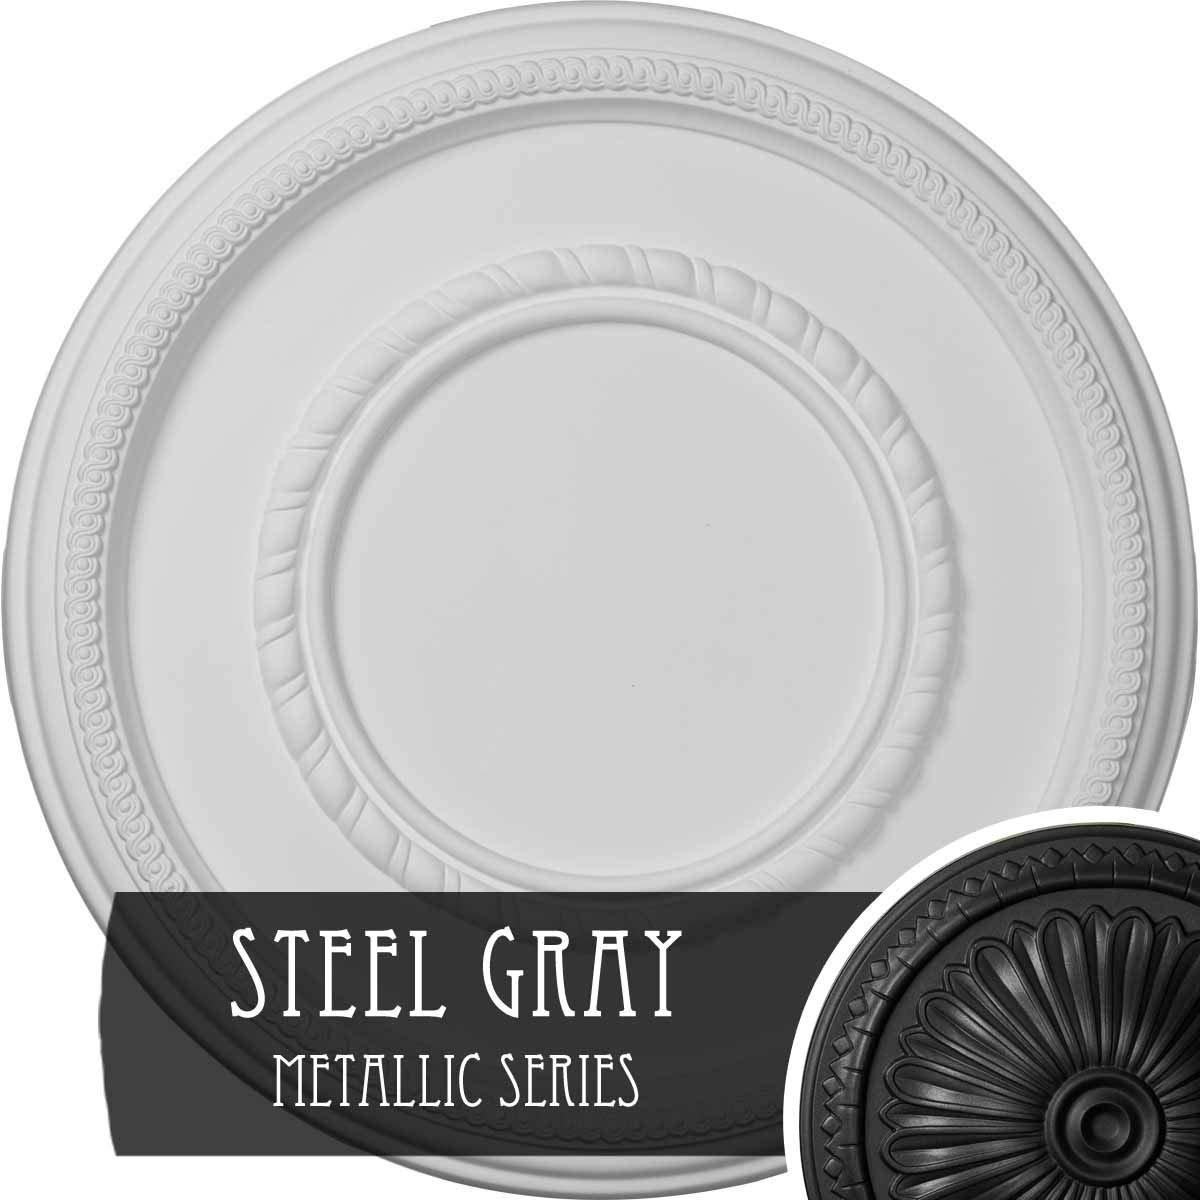 Ekena Millwork CM17FESGS Federal Roped Large Ceiling Medallion fits Canopies up to 7 3/4'', Steel Gray